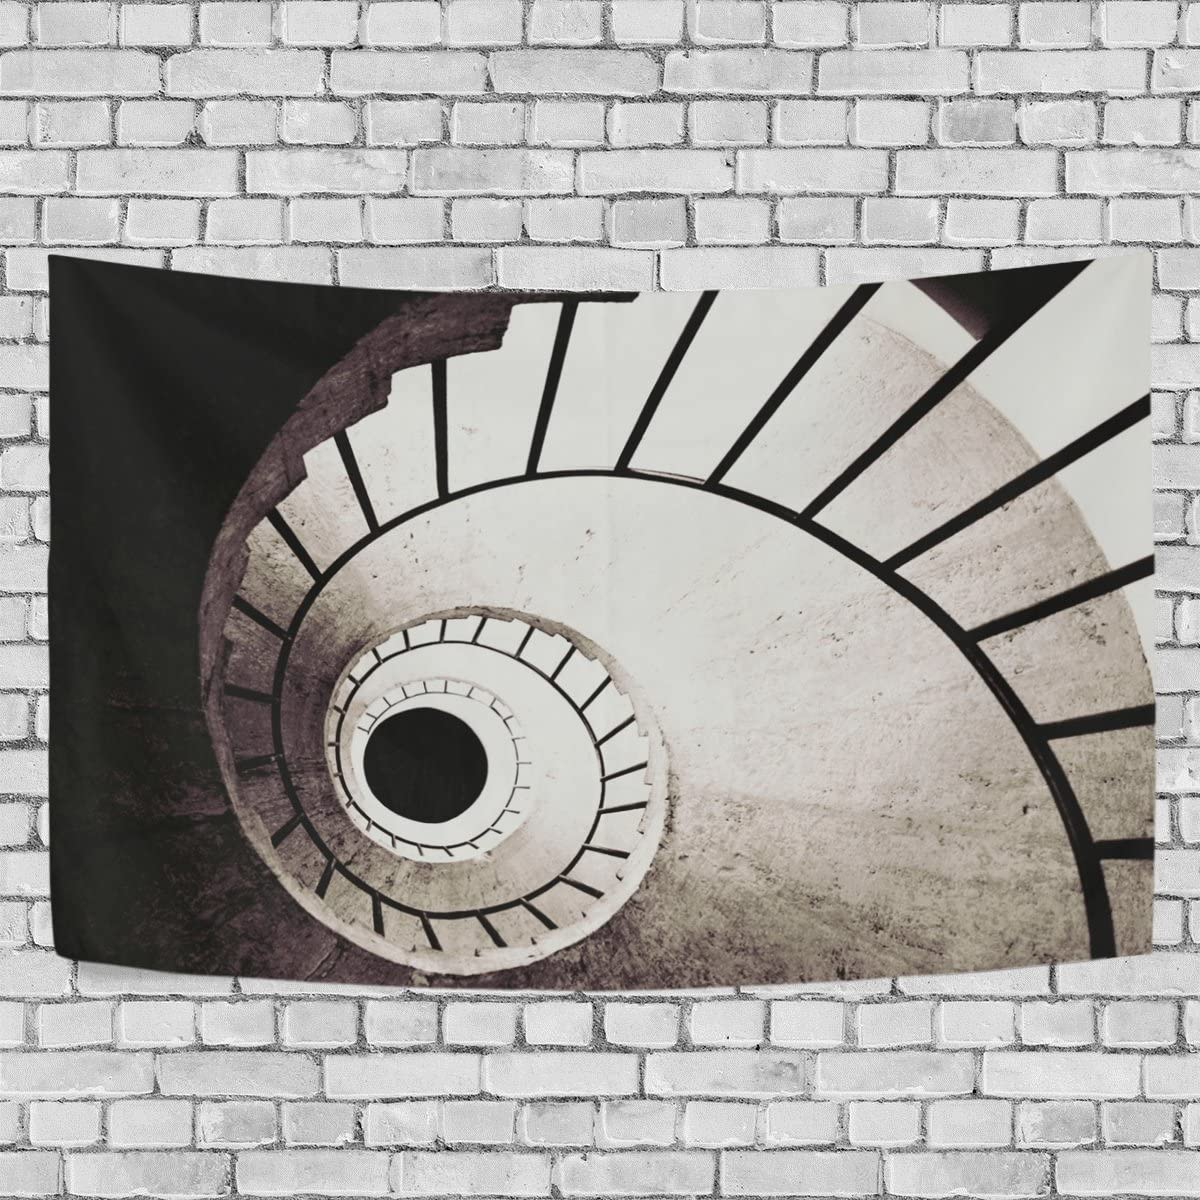 coosun tapete de pared escalera de caracol en blanco y negro decoración tapiz decorativo de pared alfombra, 60